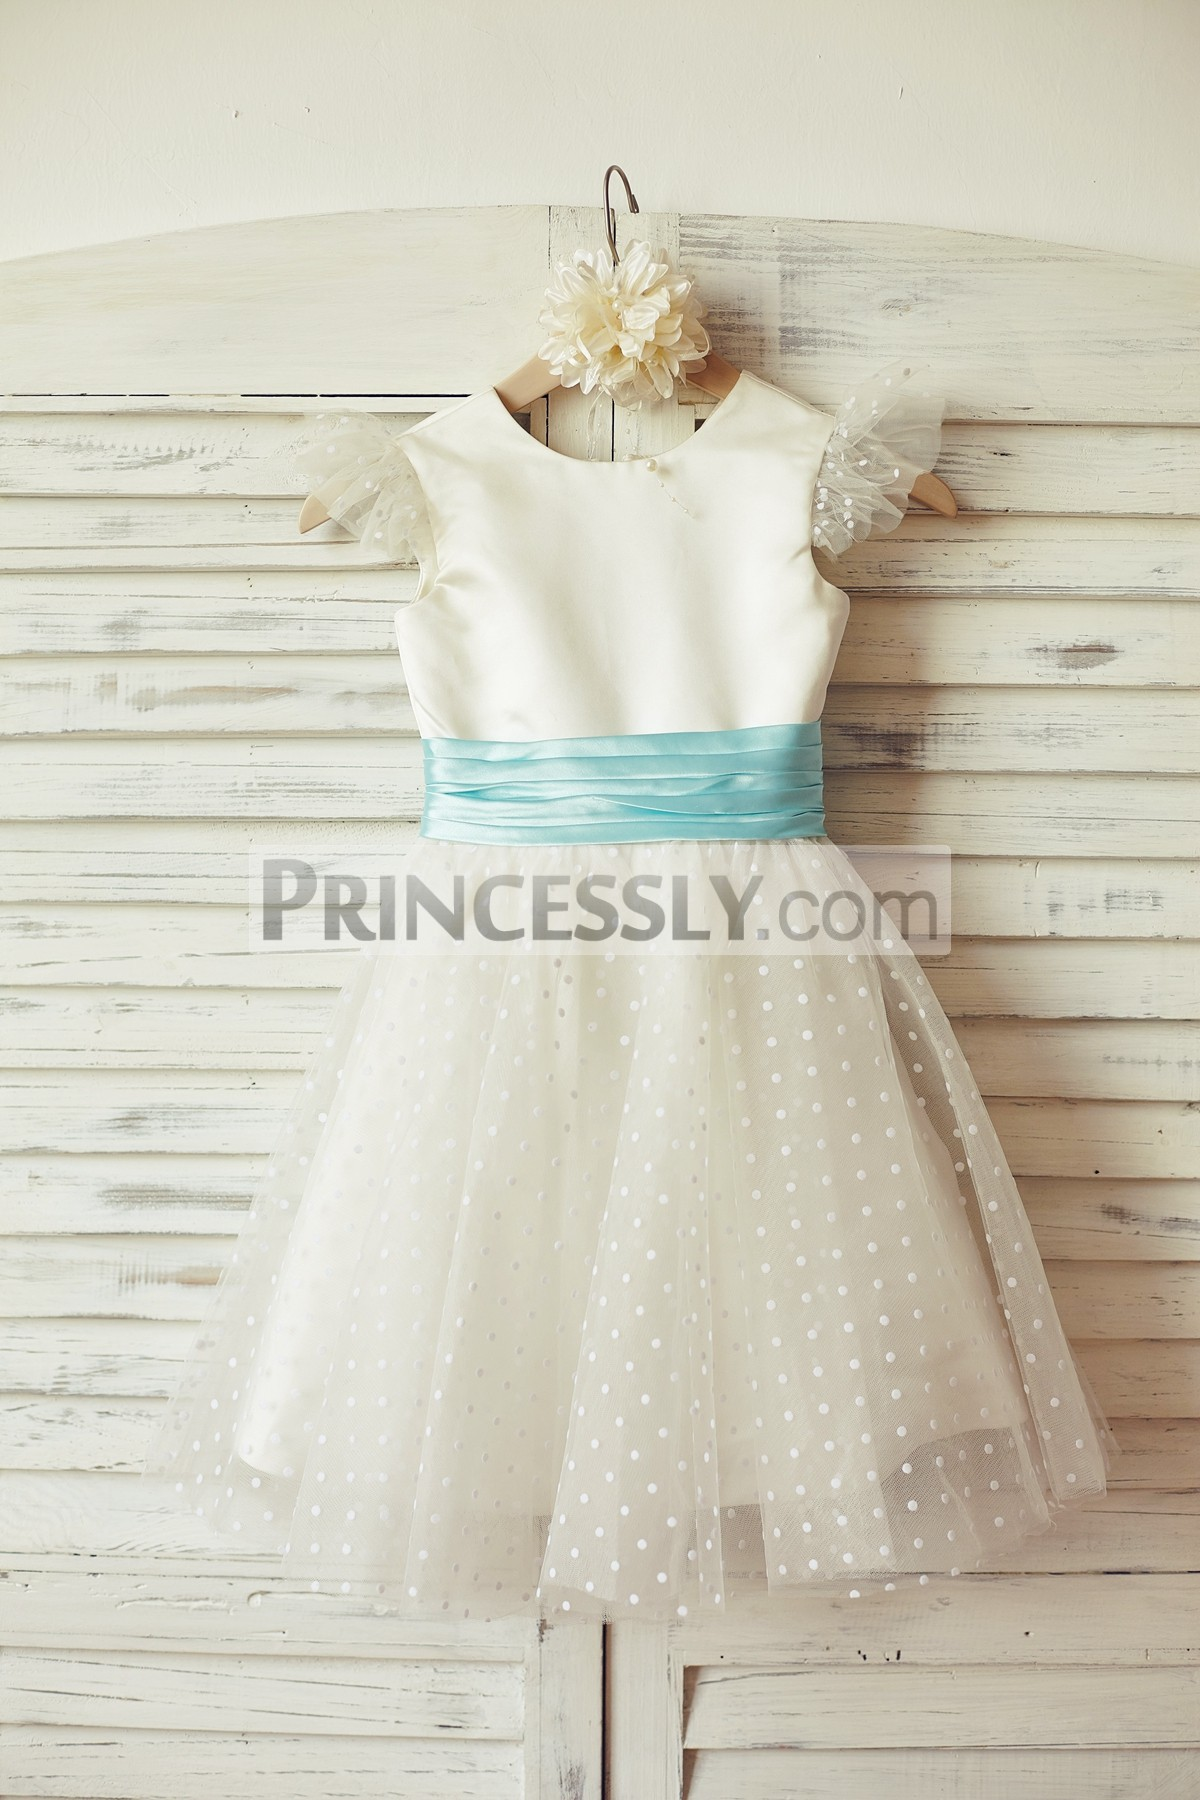 Cap sleeves ivory satin dotted tulle flower girl dress with blue sash